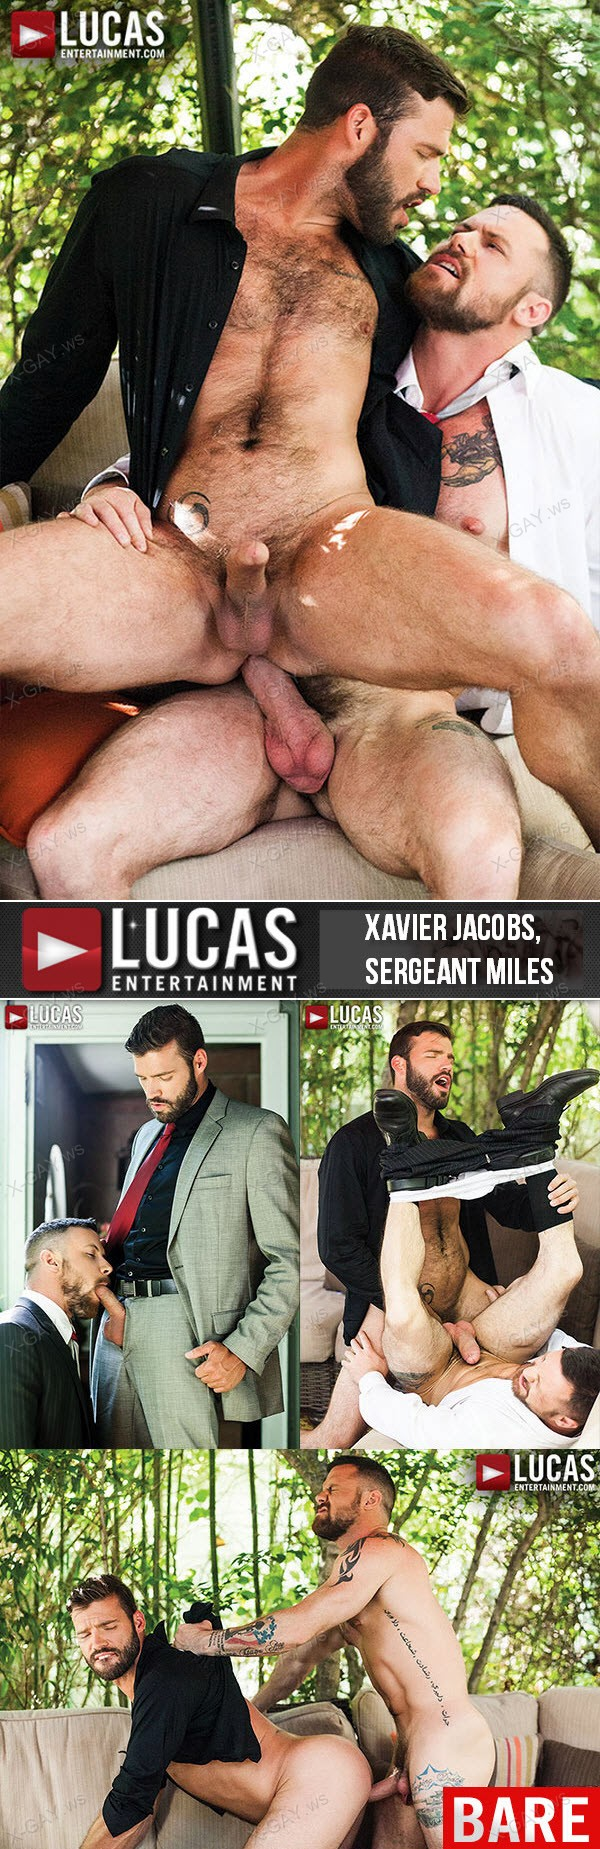 LucasEntertainment: Gentlemen 15: Suited For Sex (Xavier Jacobs, Sergeant Miles) (Bareback)